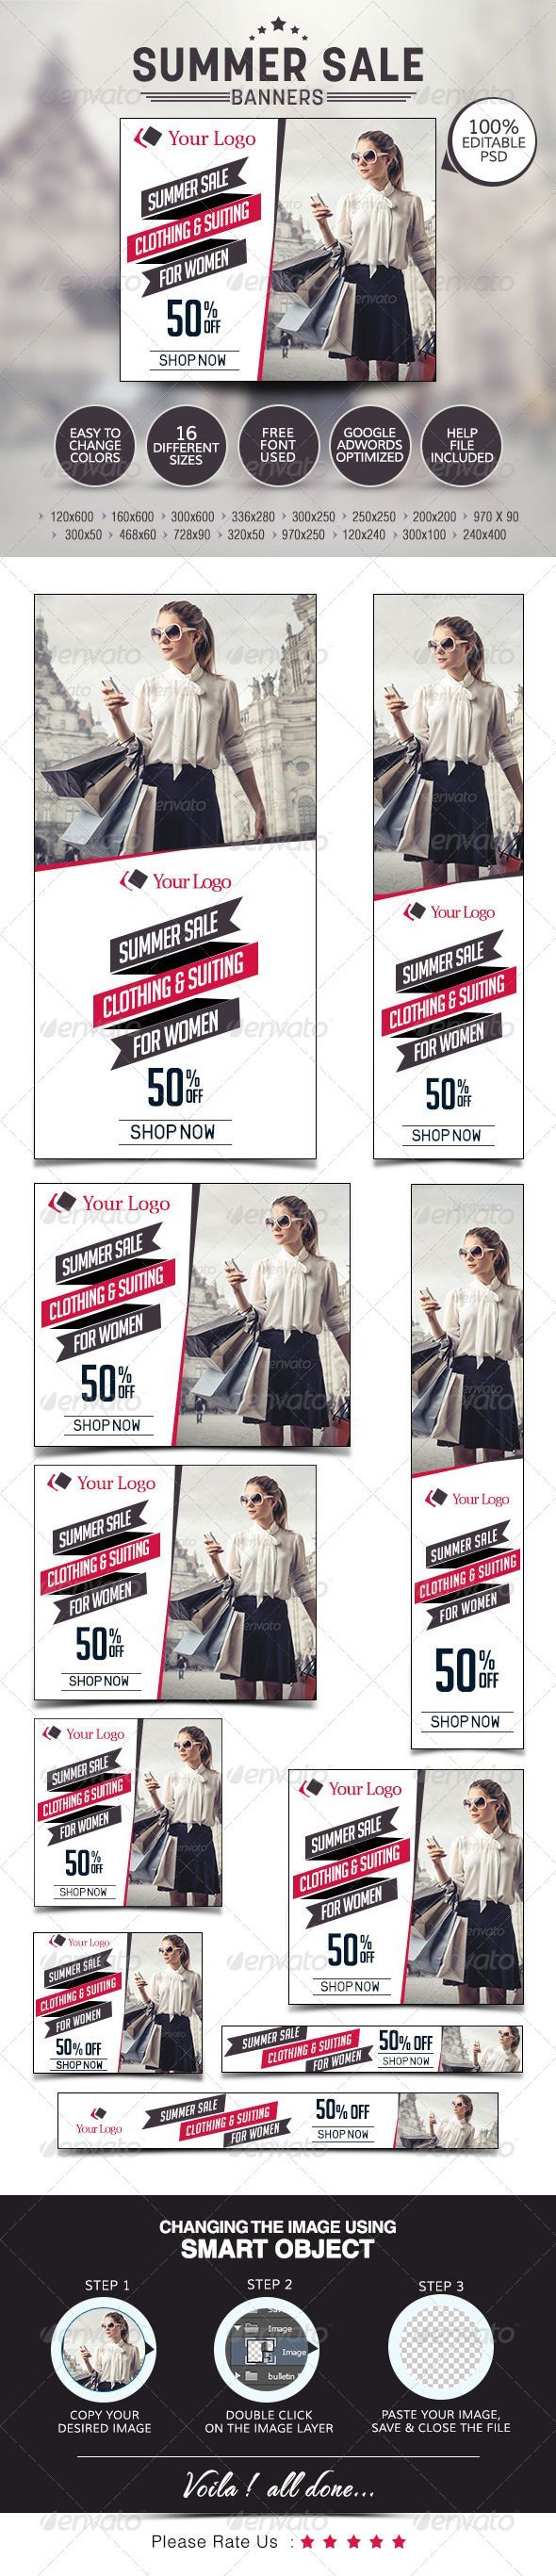 Poster design exhibition design large format wakefield - Buy Summer Sale Banners By Doto On Graphicriver Got A Summer Special Offer Promote Your Products And Services With This Great Looking Banner Set